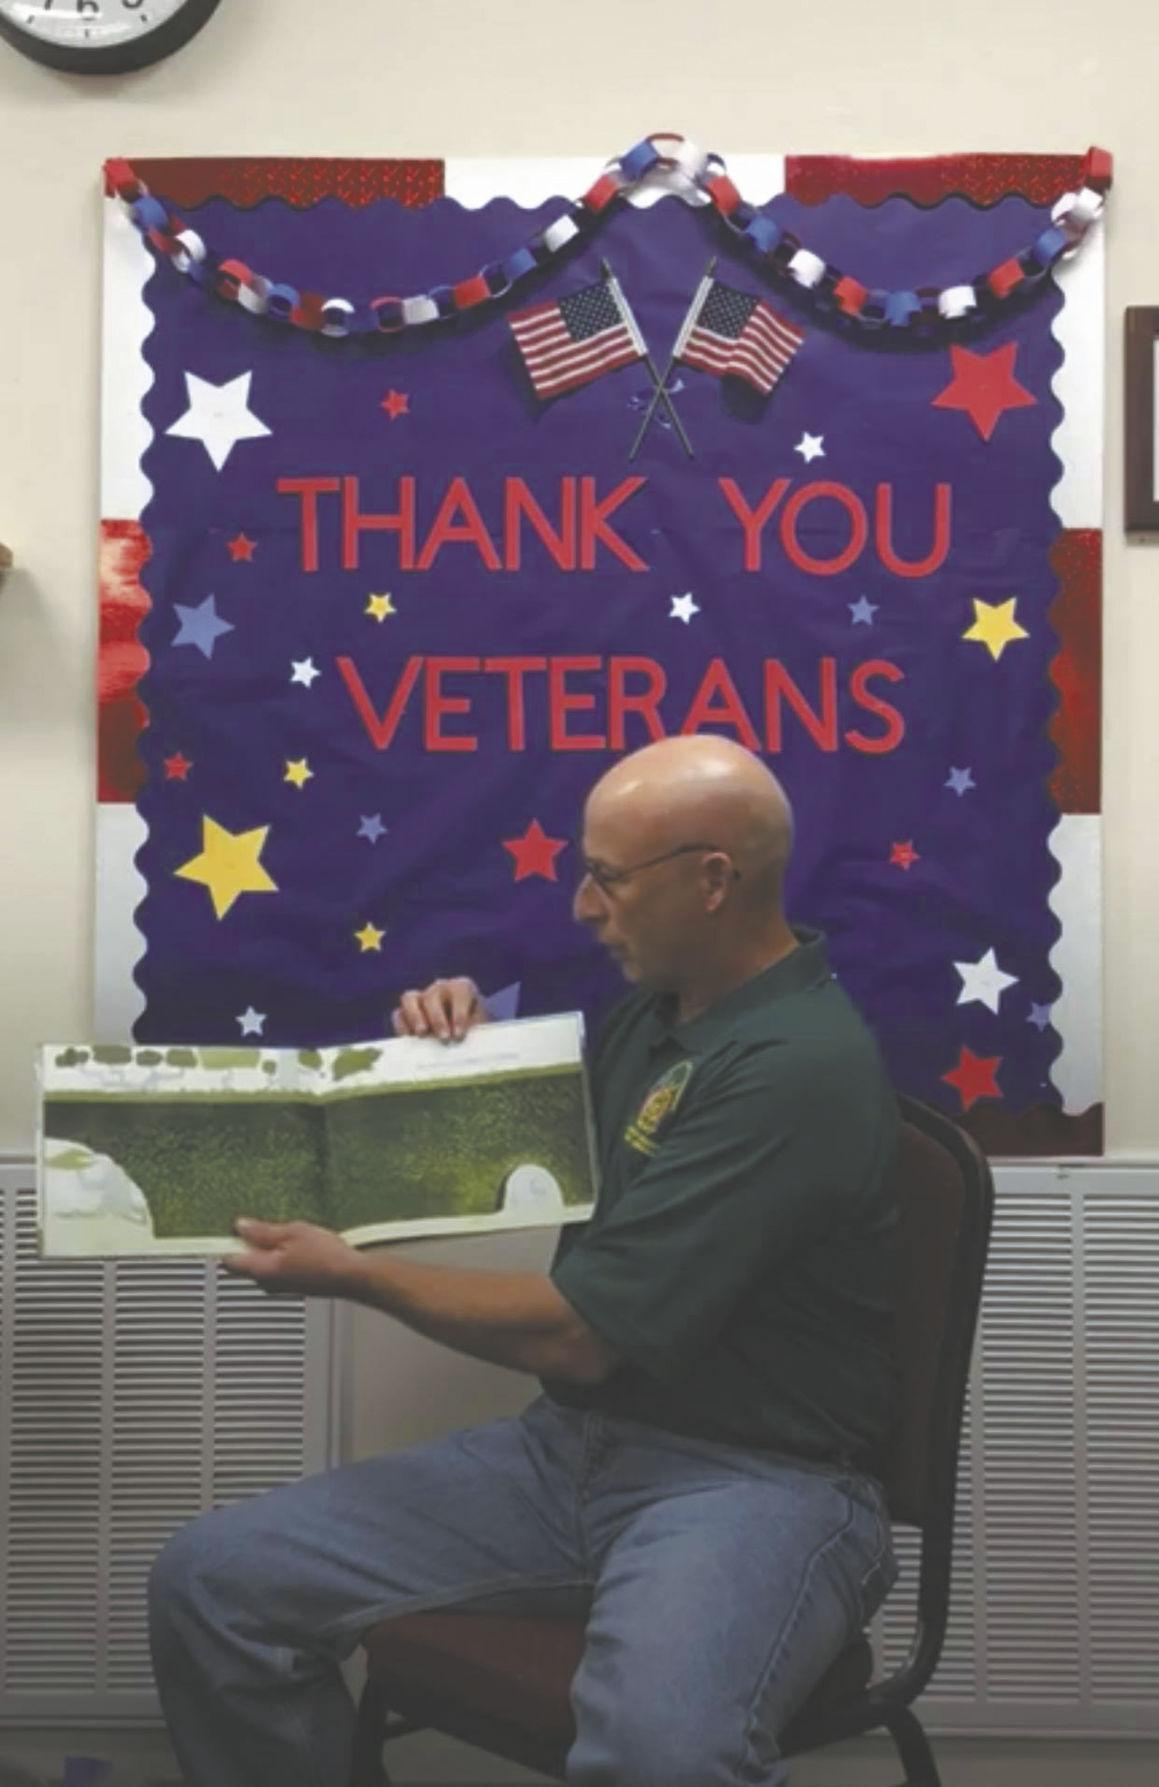 Special Veterans Day story time at TPL